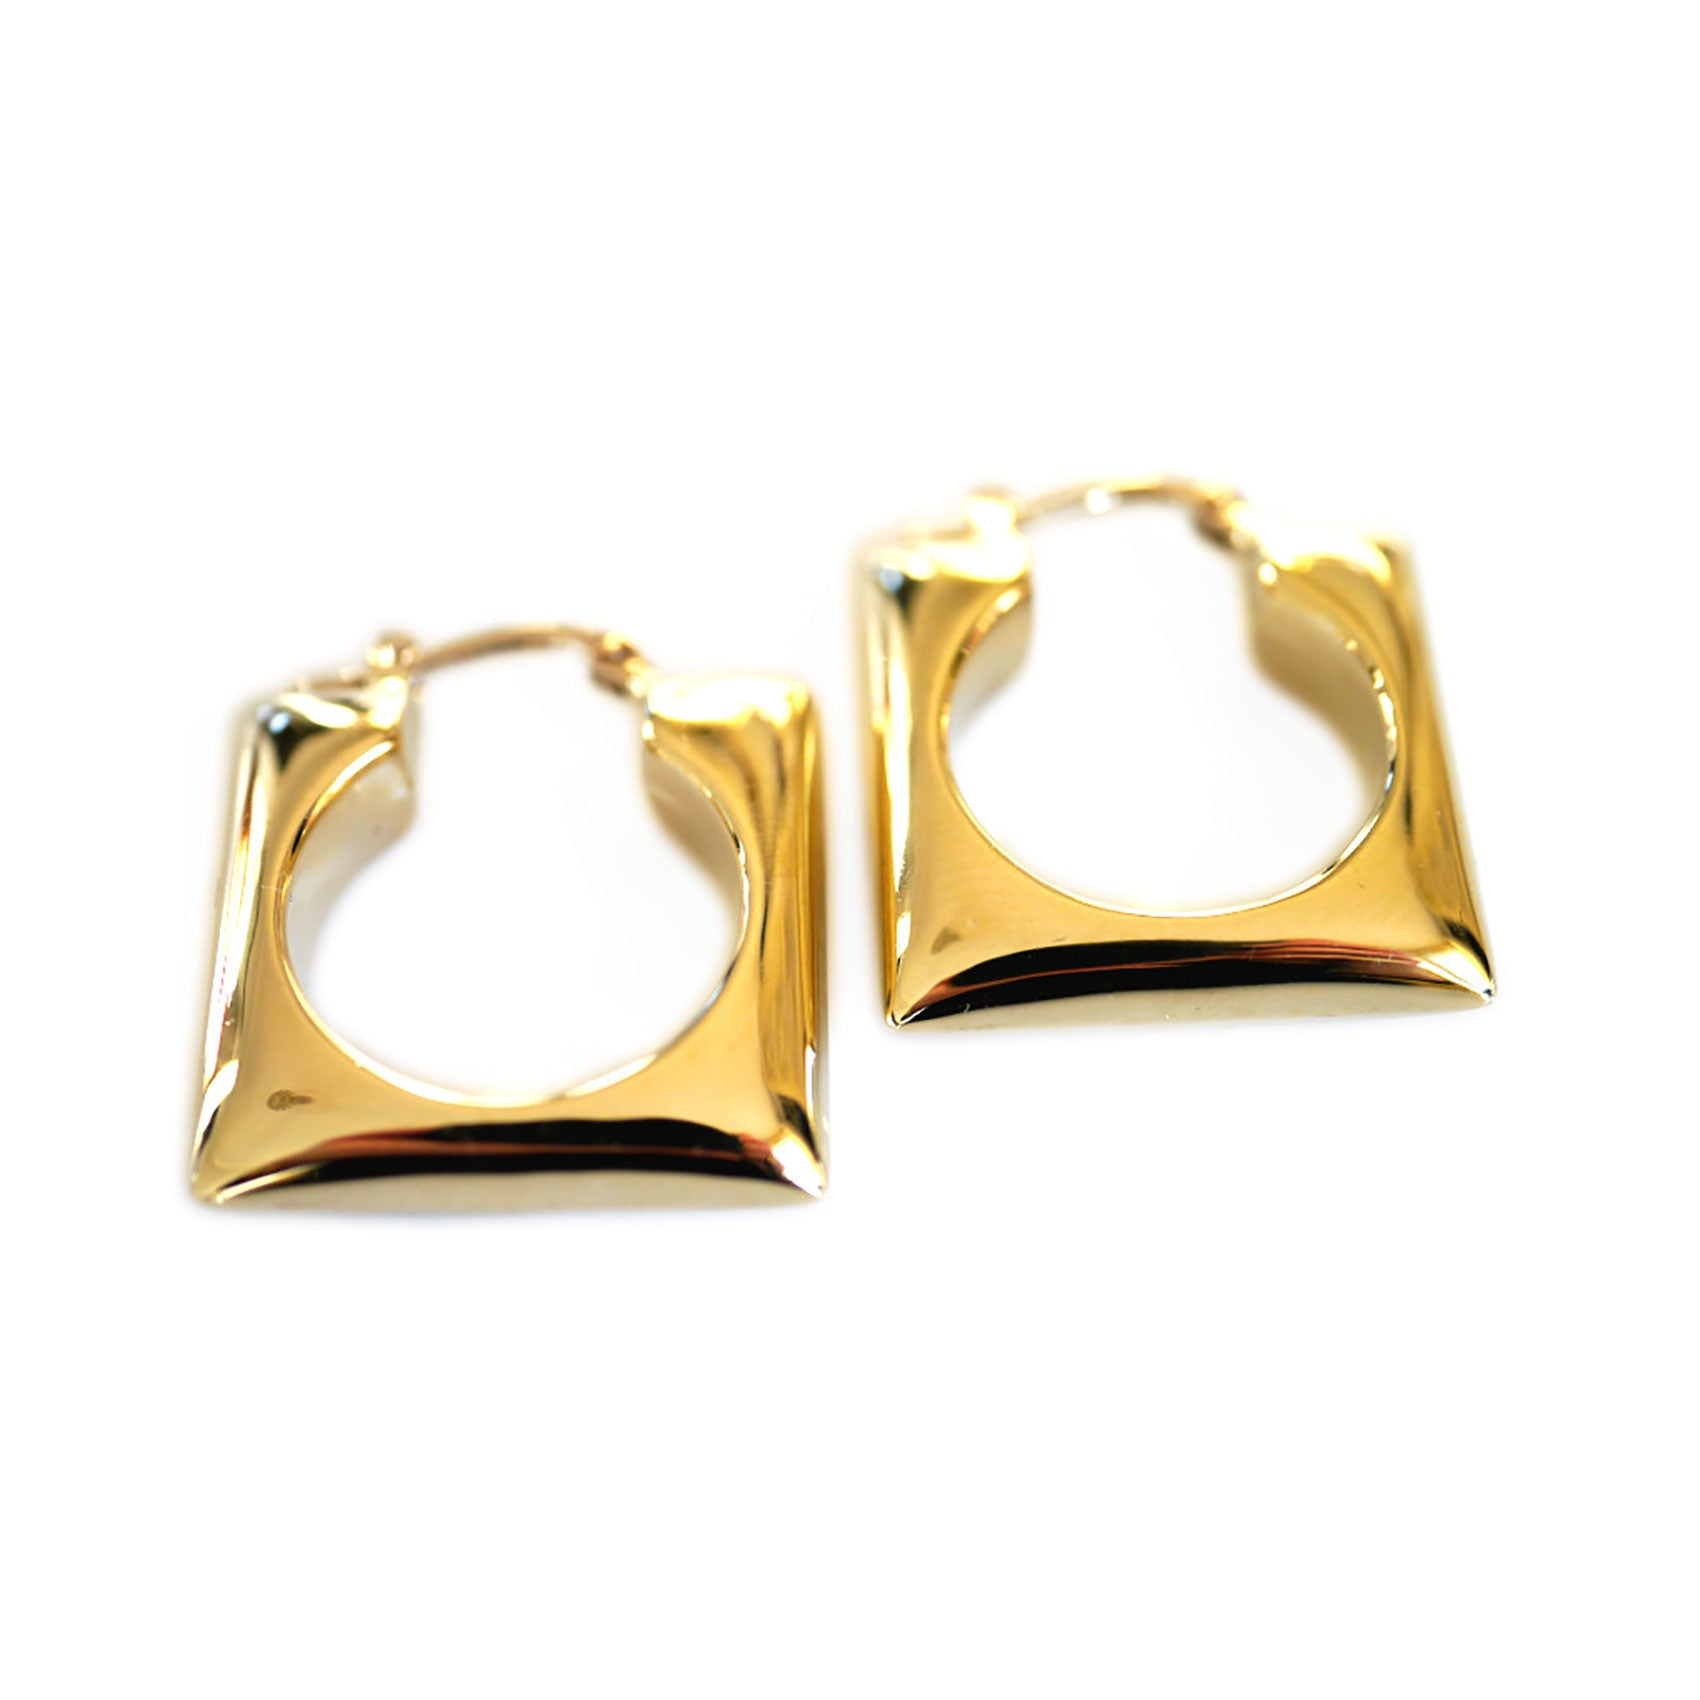 Gold Glorious Gold: Squaring the Circle Earrings